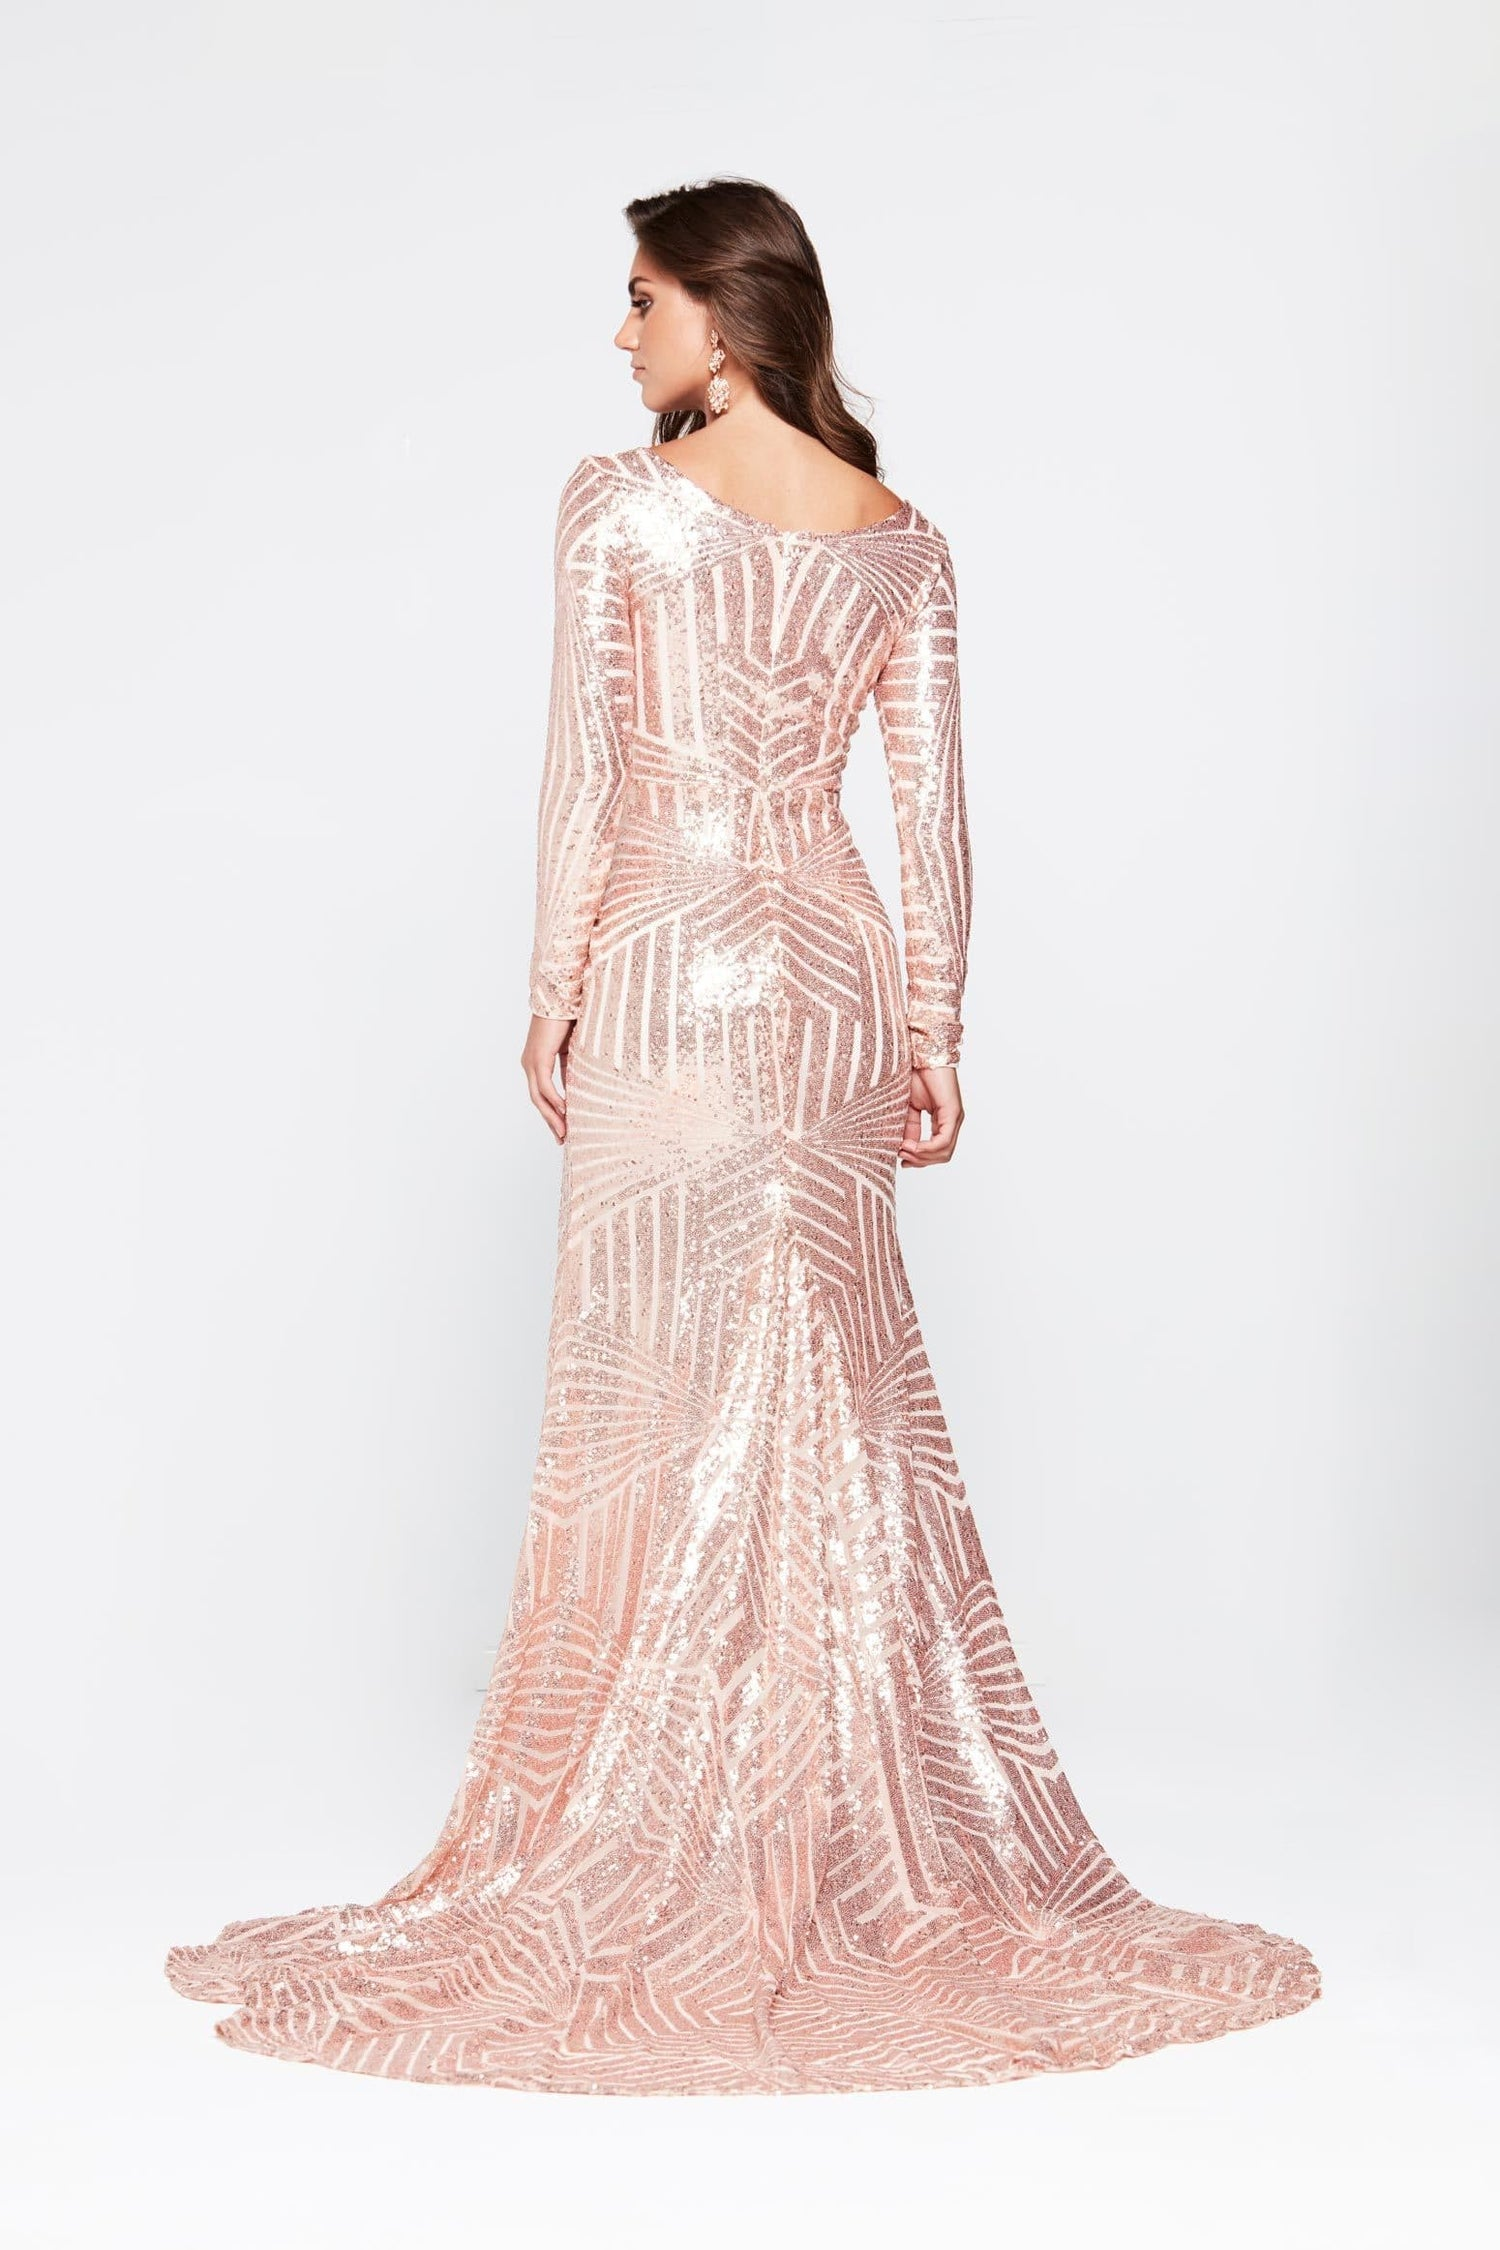 b2999c96c4eb ... A&N Kaya- Rose Gold Sequin Dress with Long Sleeve and Side Slit